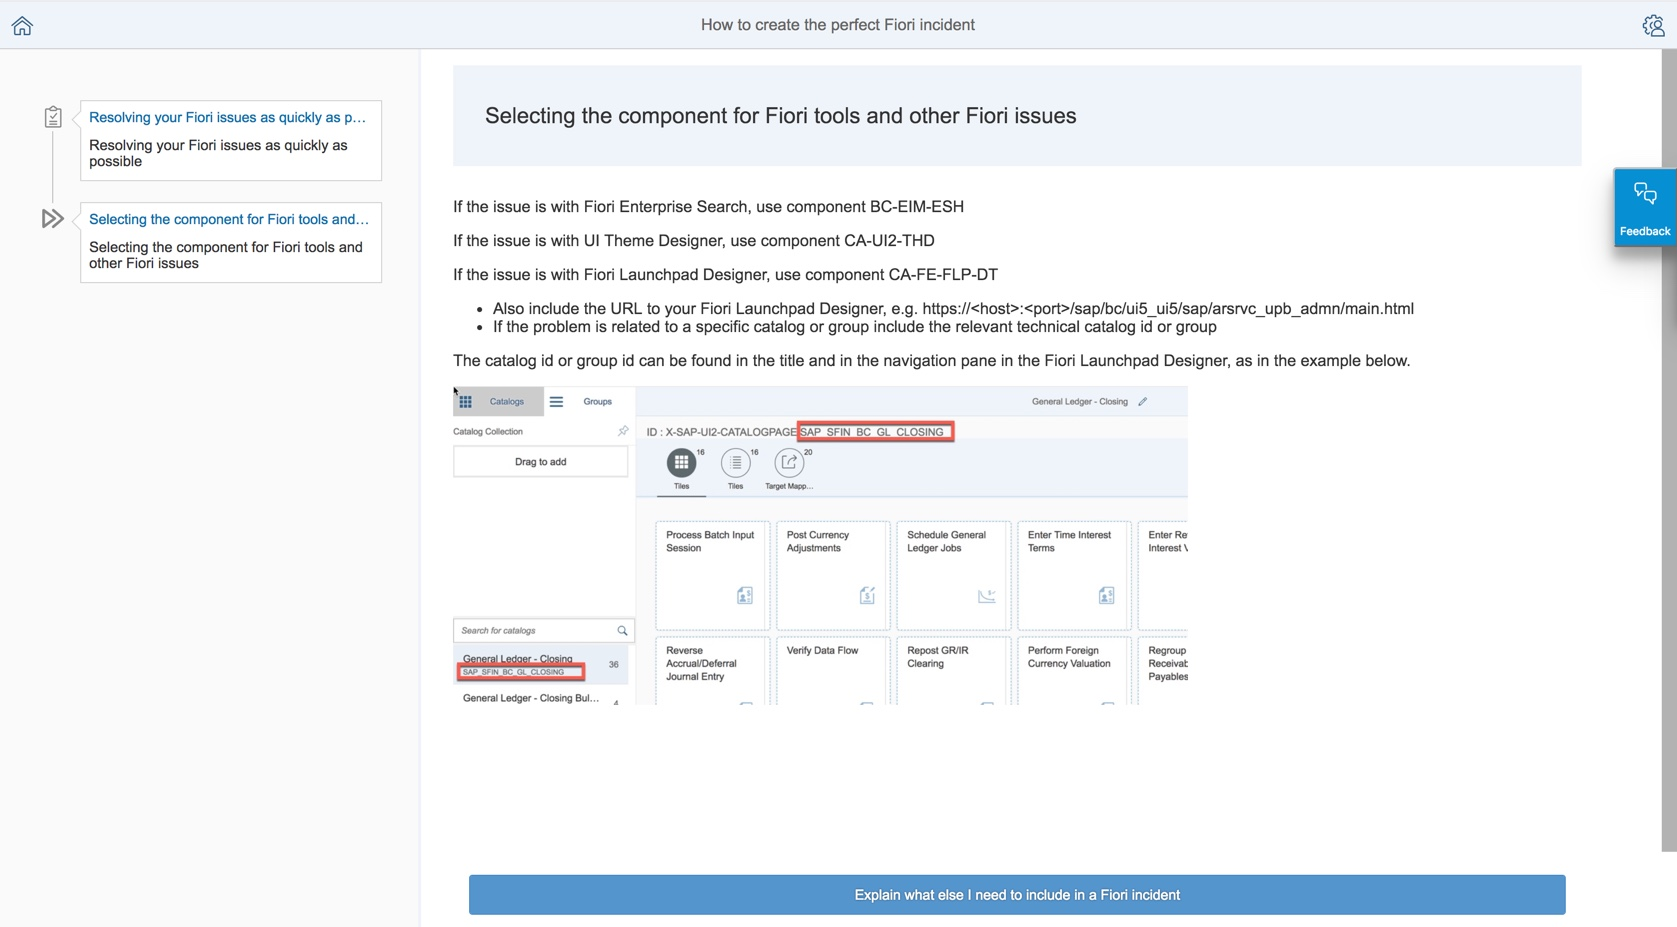 Next step example of How to create the perfect Fiori incident